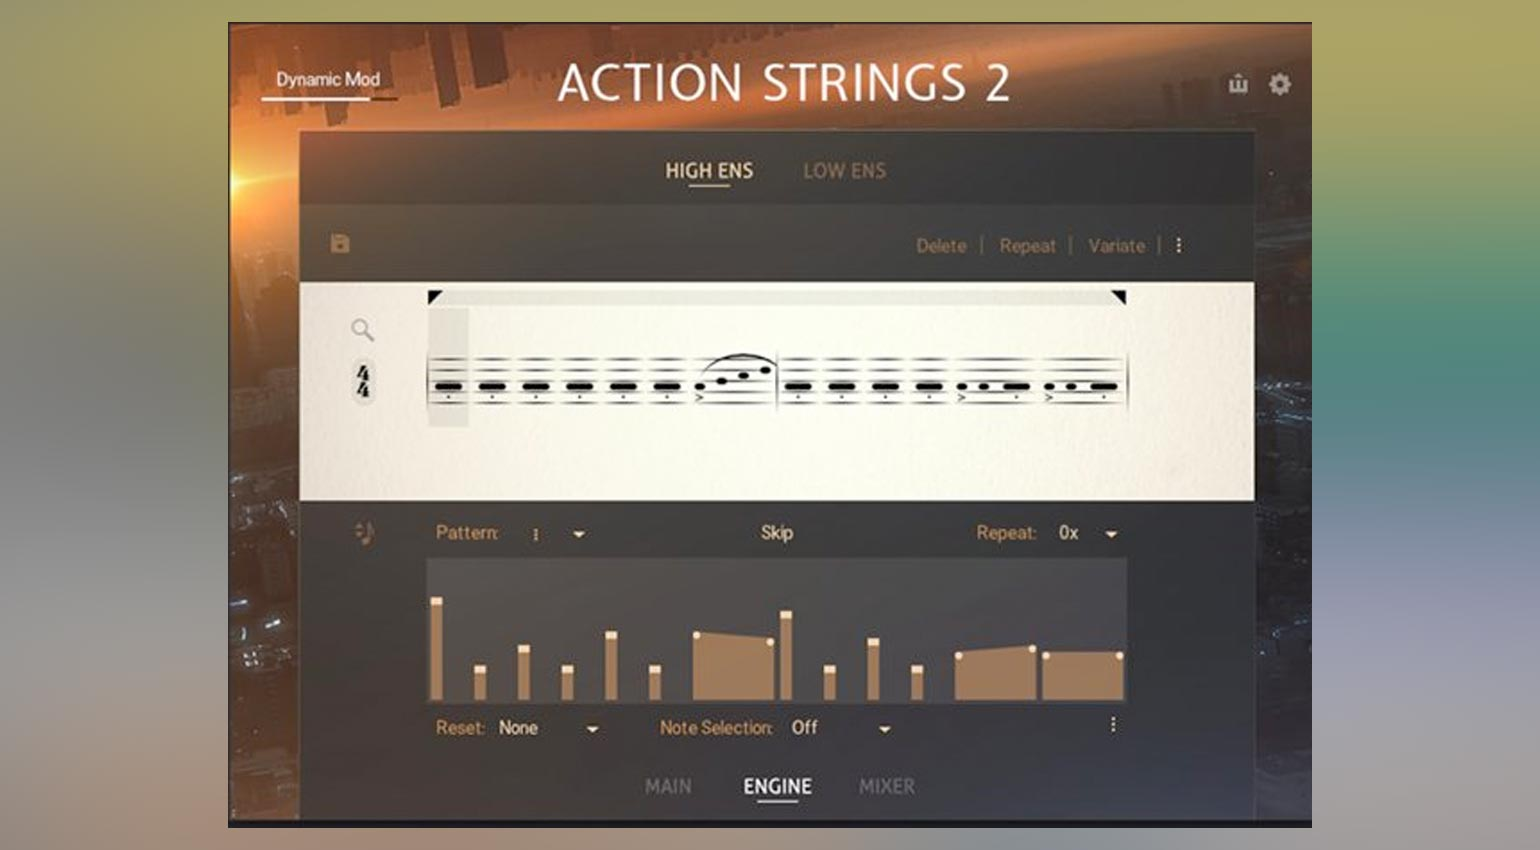 Action Strings 2